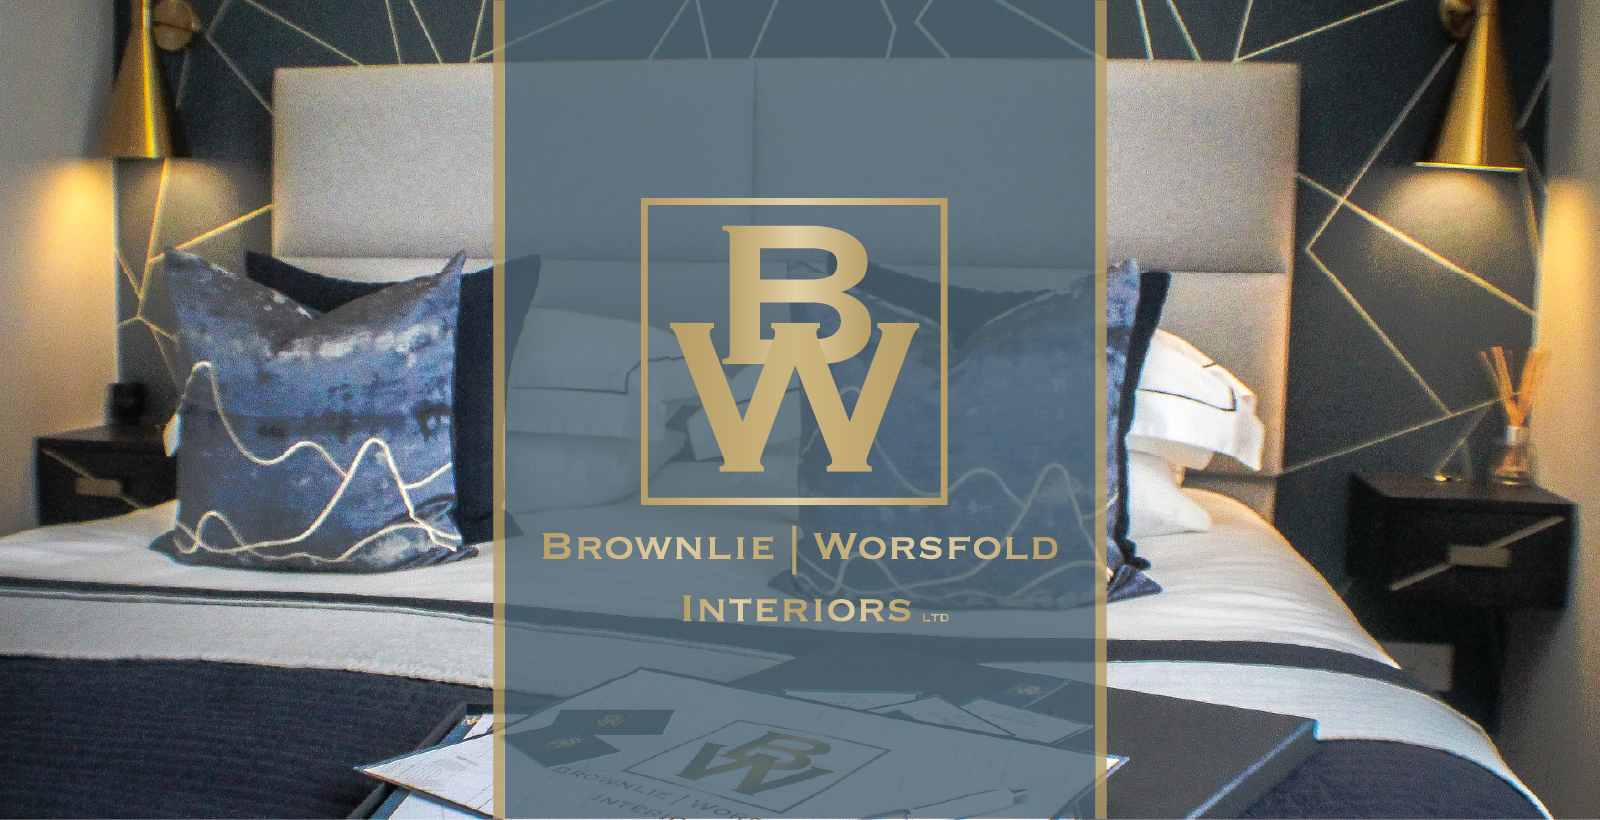 Brownlie|Worsfold Interiors Ltd